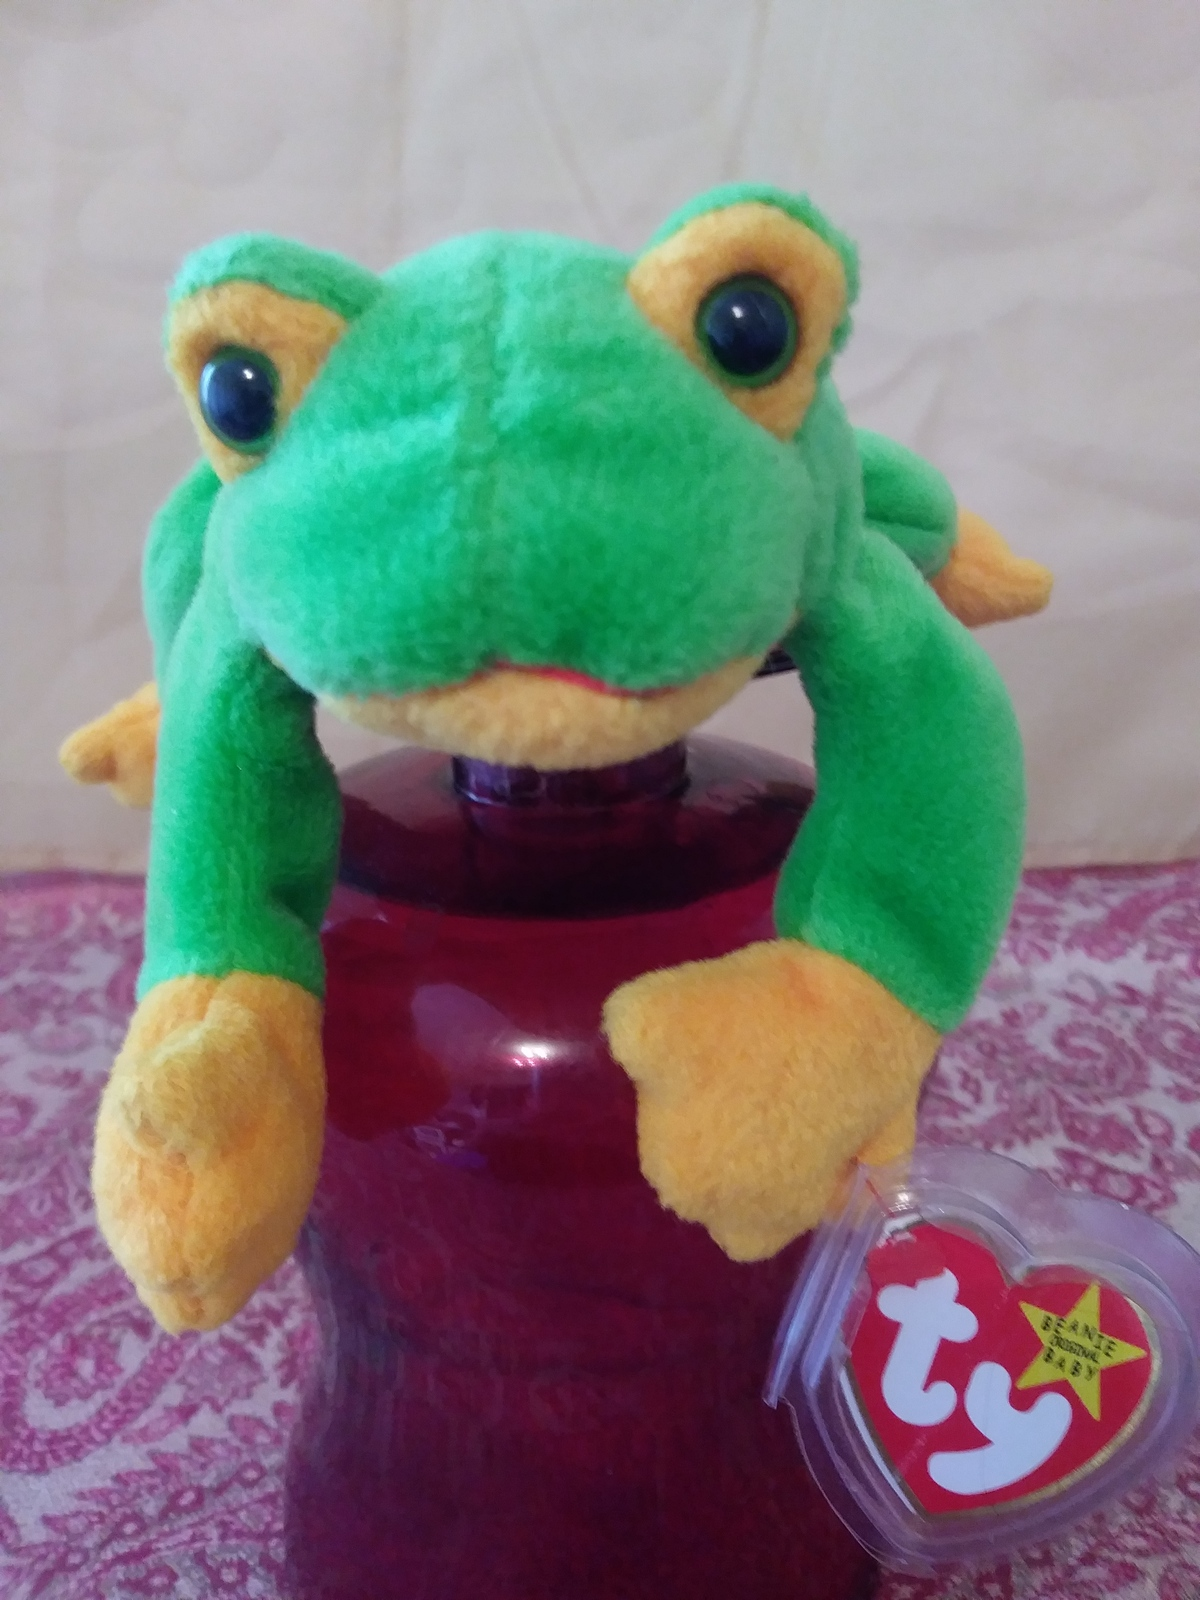 689b81cc6c8 ... Smoochy the Frog 1997 Rare and 48 similar items.  1523049155913563571258. 1523049155913563571258